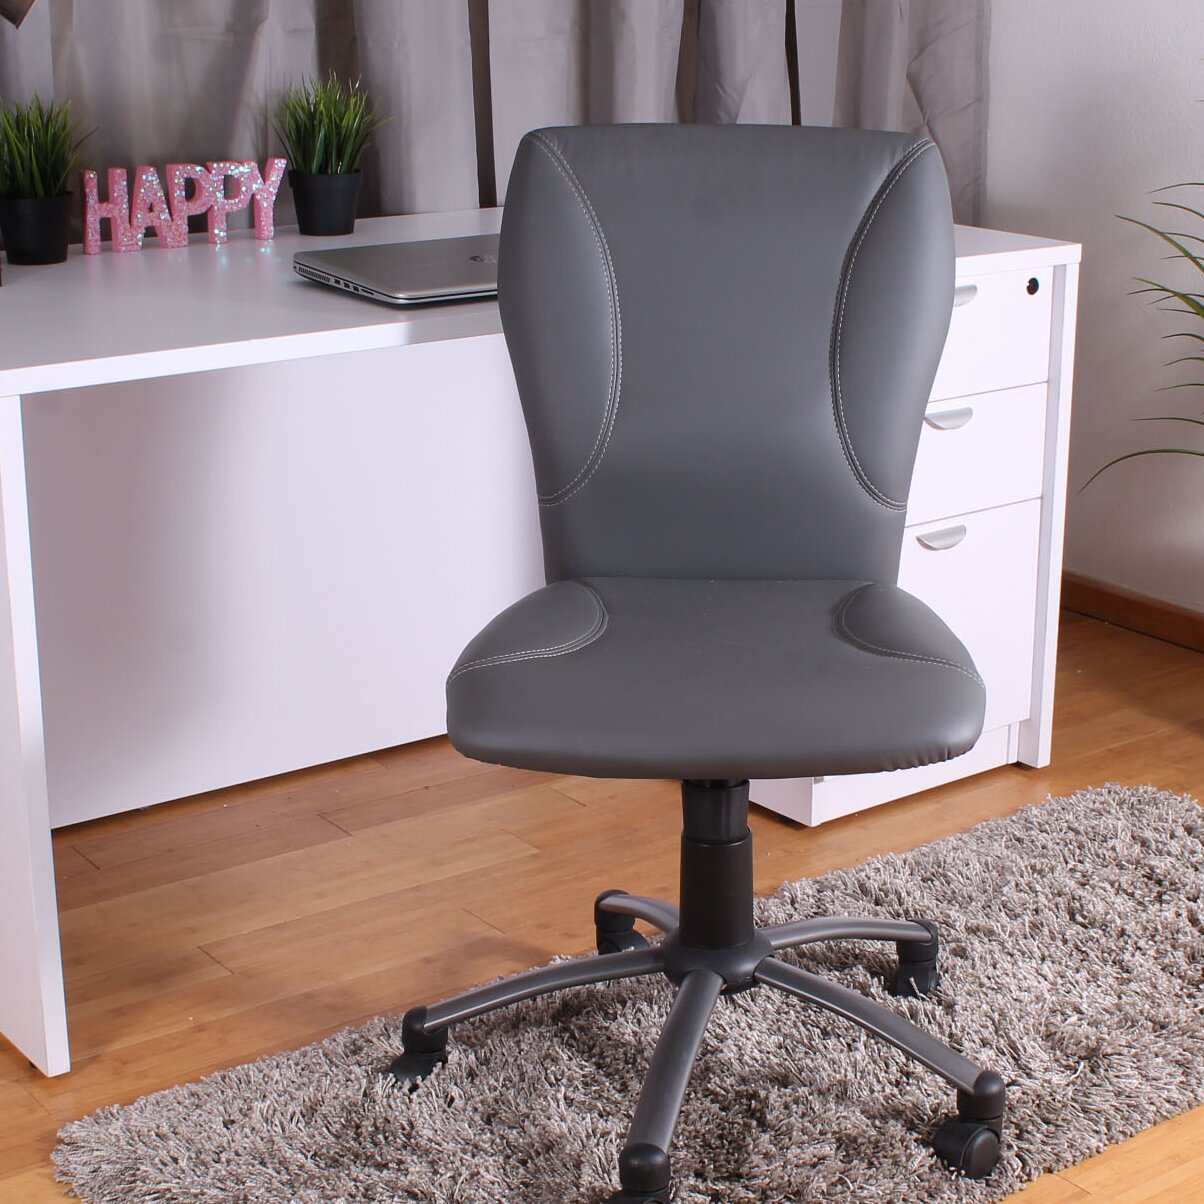 Ikea Off White Rug Release Date: Boss Office Products Tiffany Adjustable Mid-Back Task